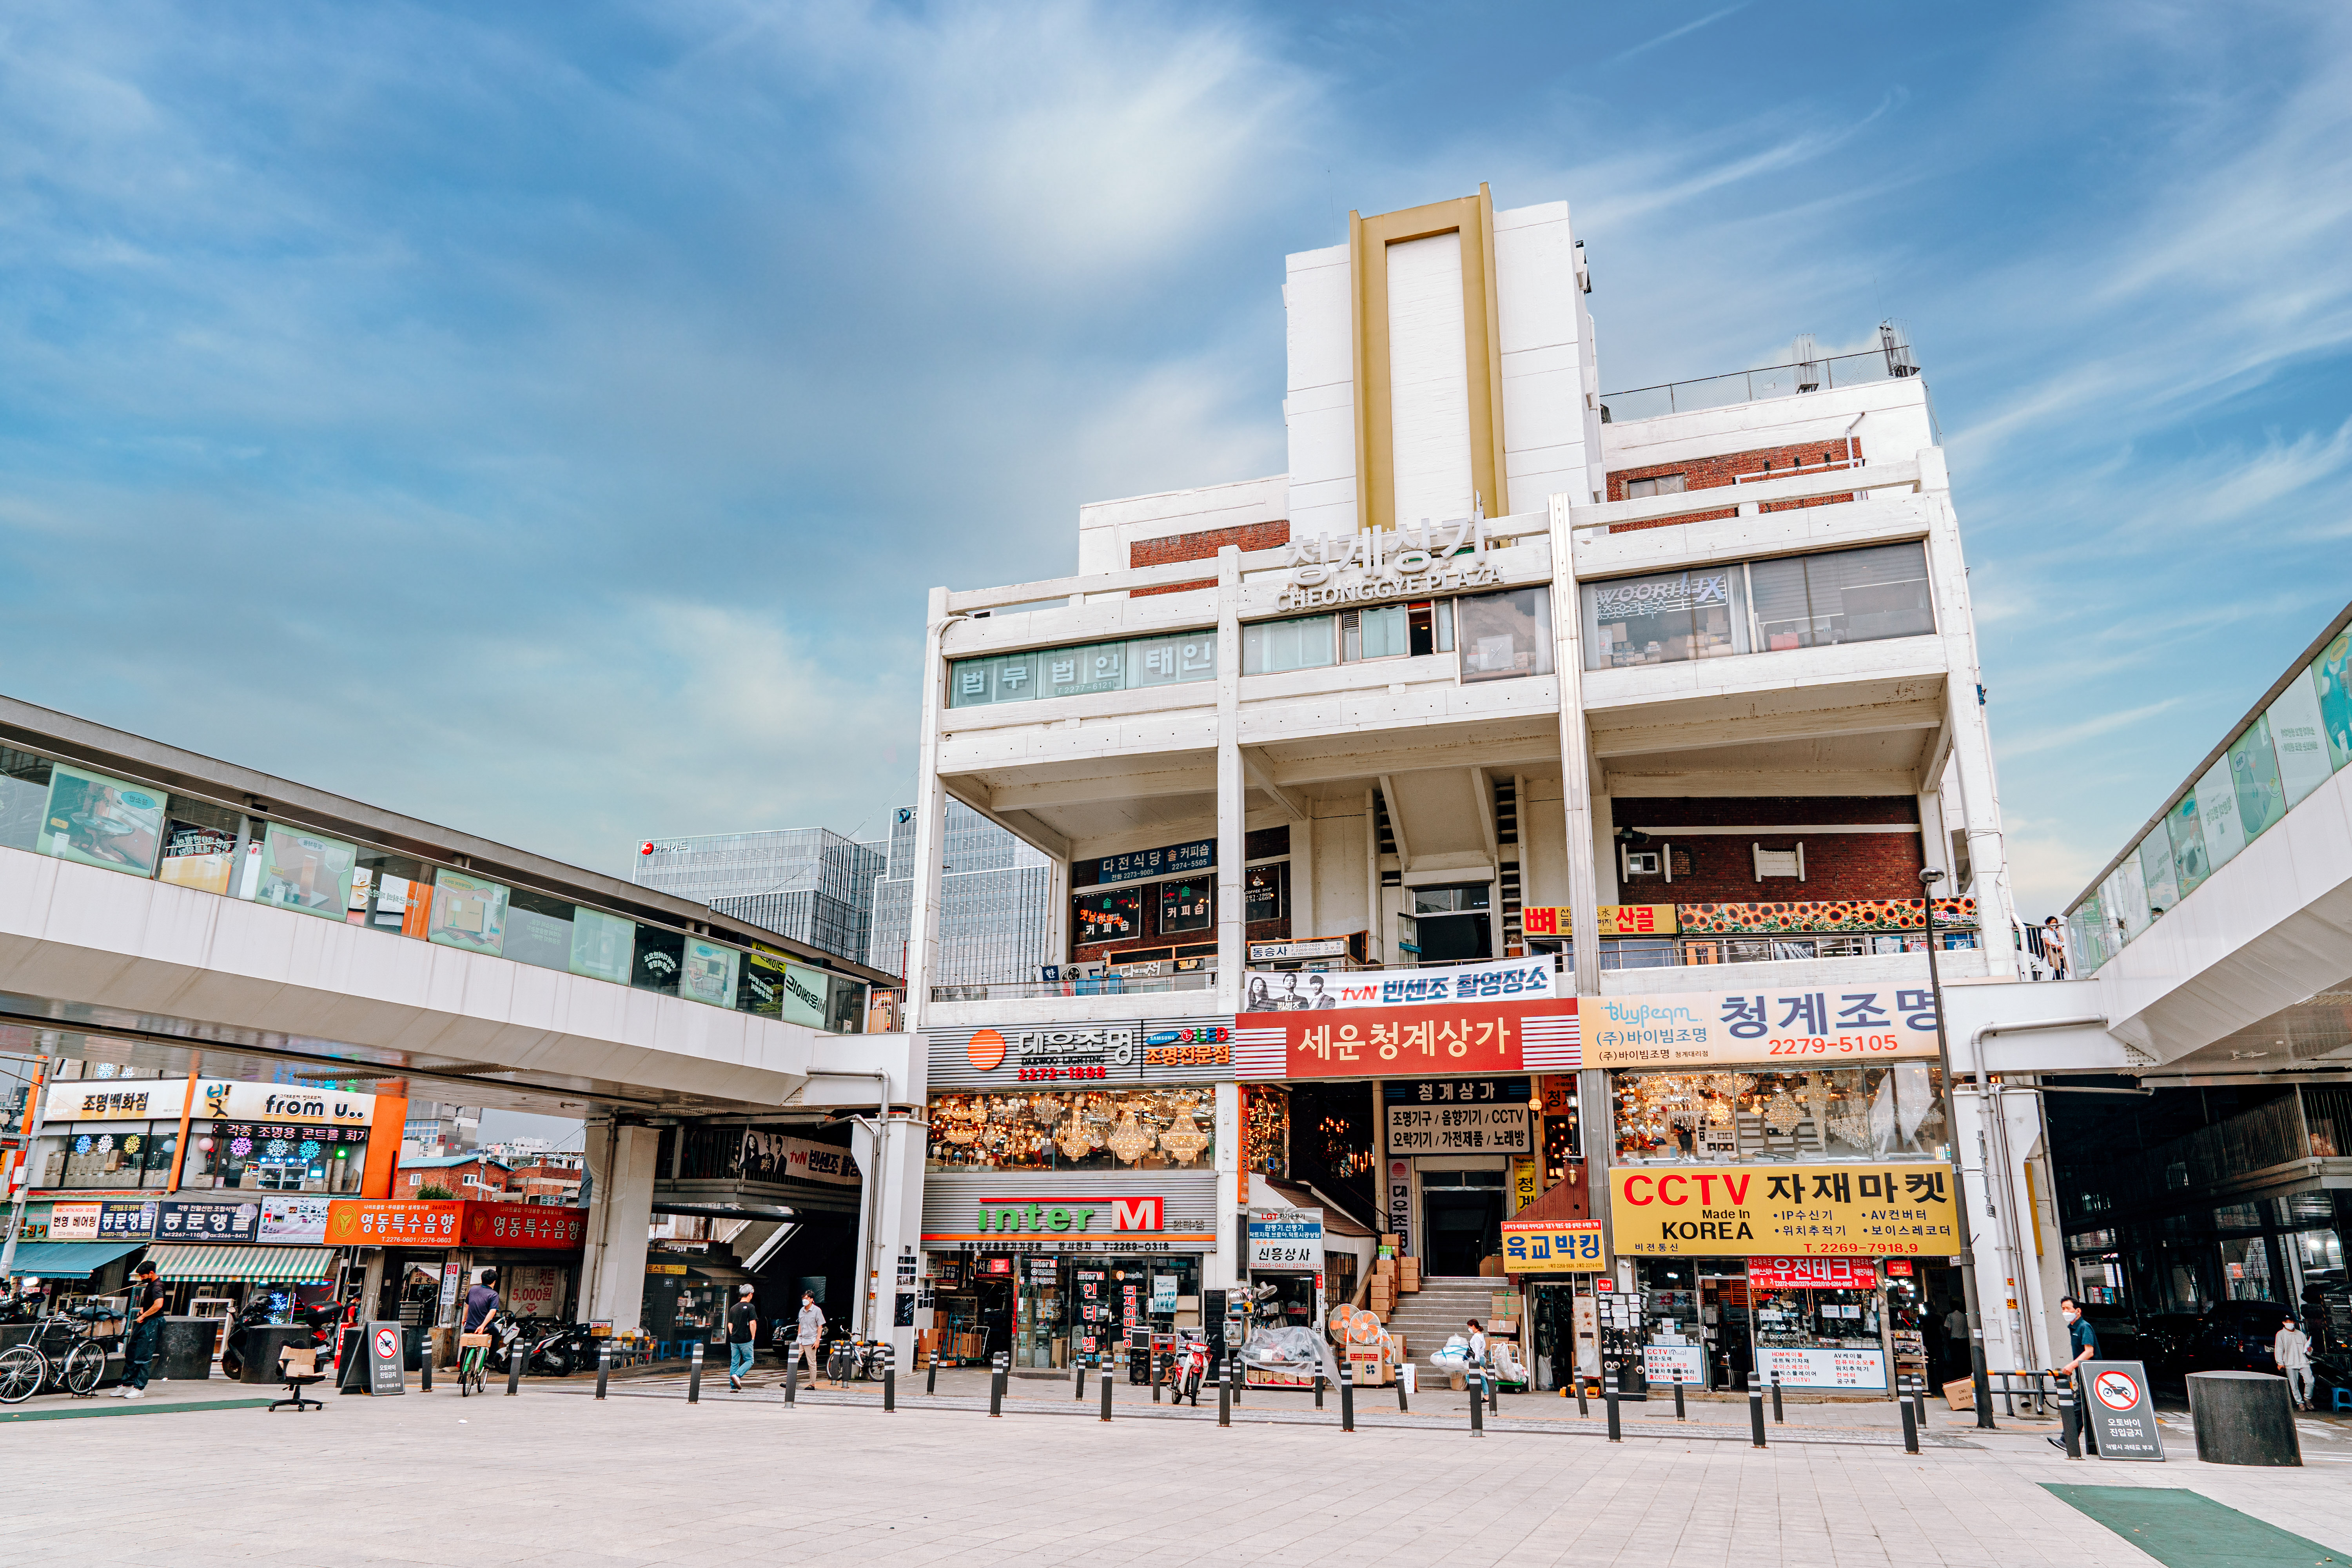 A photo of Sewoon Shopping Center. There are various signs and posters hanging on the front of the building. There are people outside the front entrance as well.